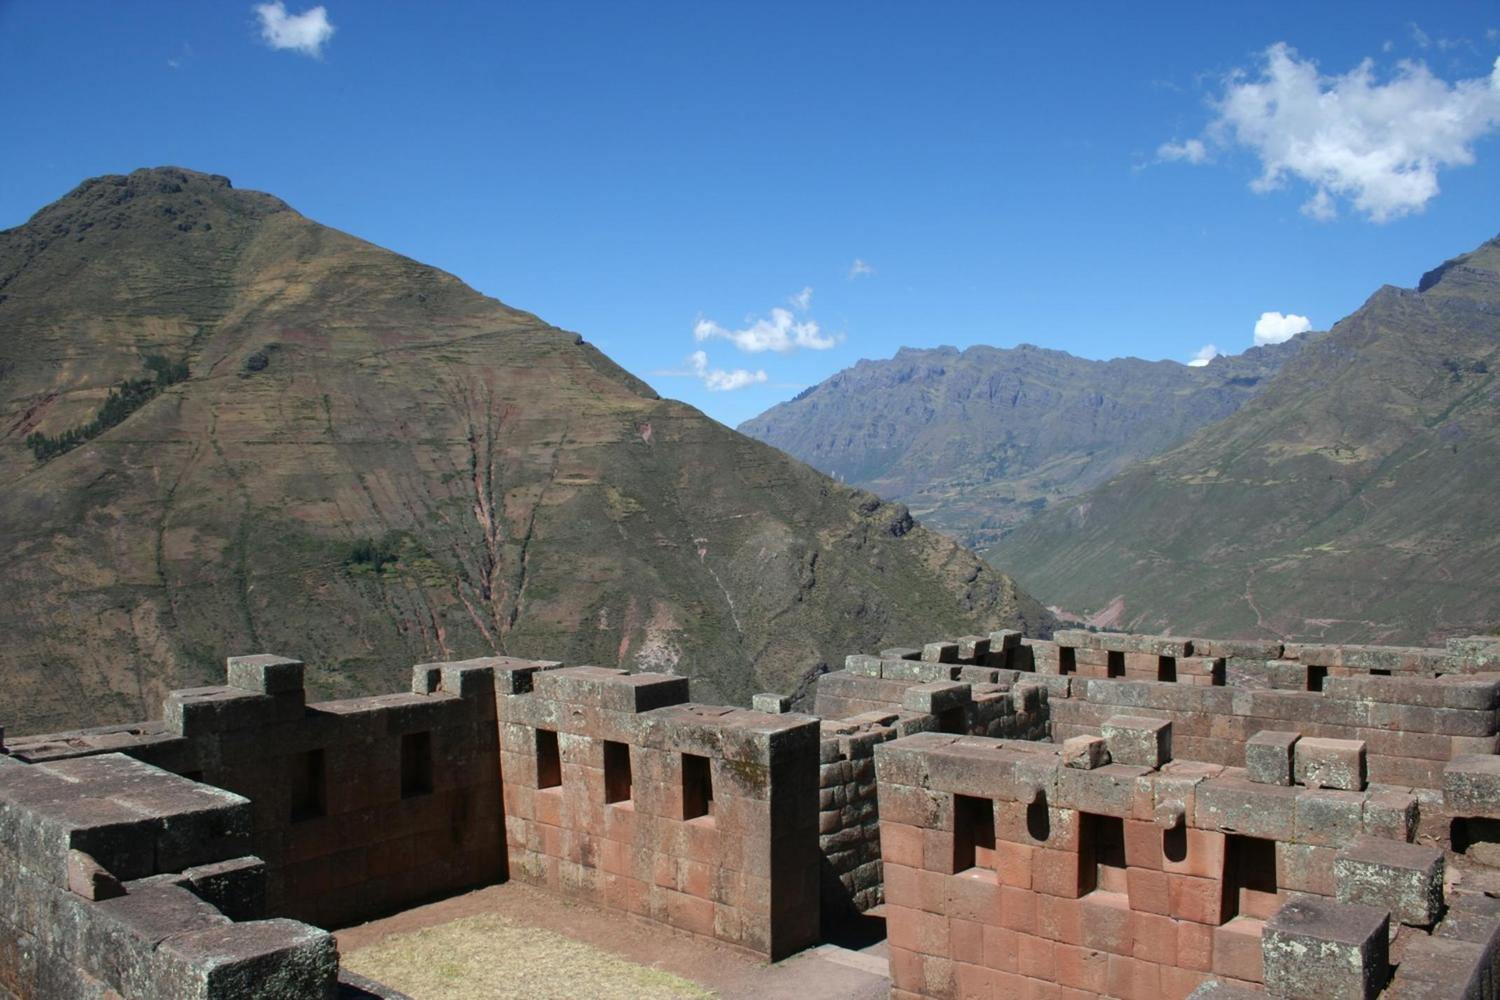 Impressive Inca architecture at Pisac, a city whose hilltop location commands incredible views over the Sacred Valley